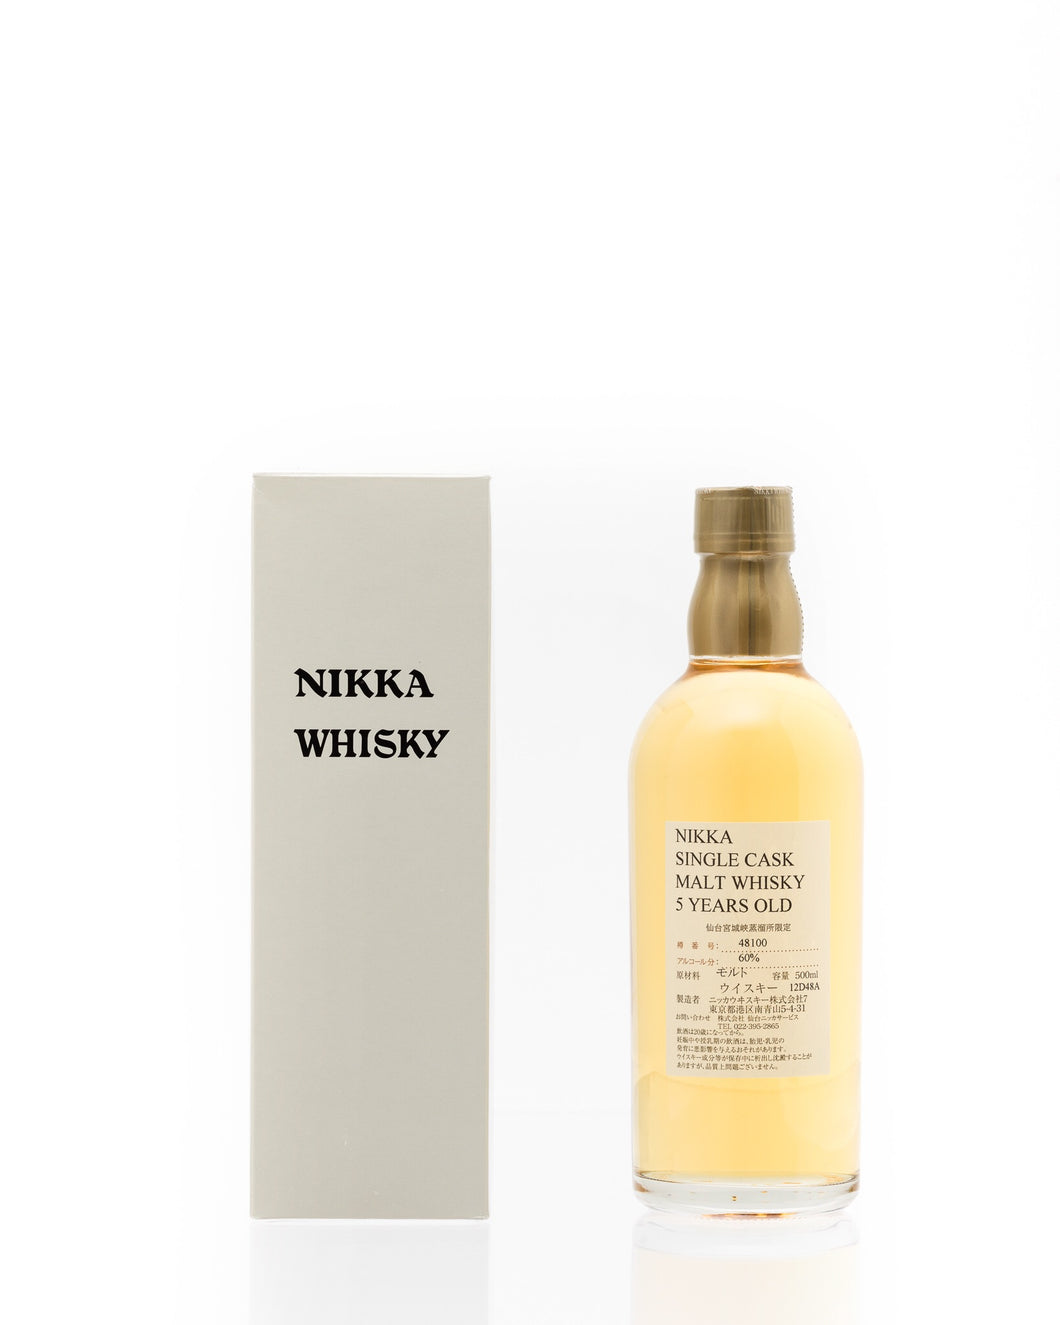 Nikka Single Cask 5 year Old